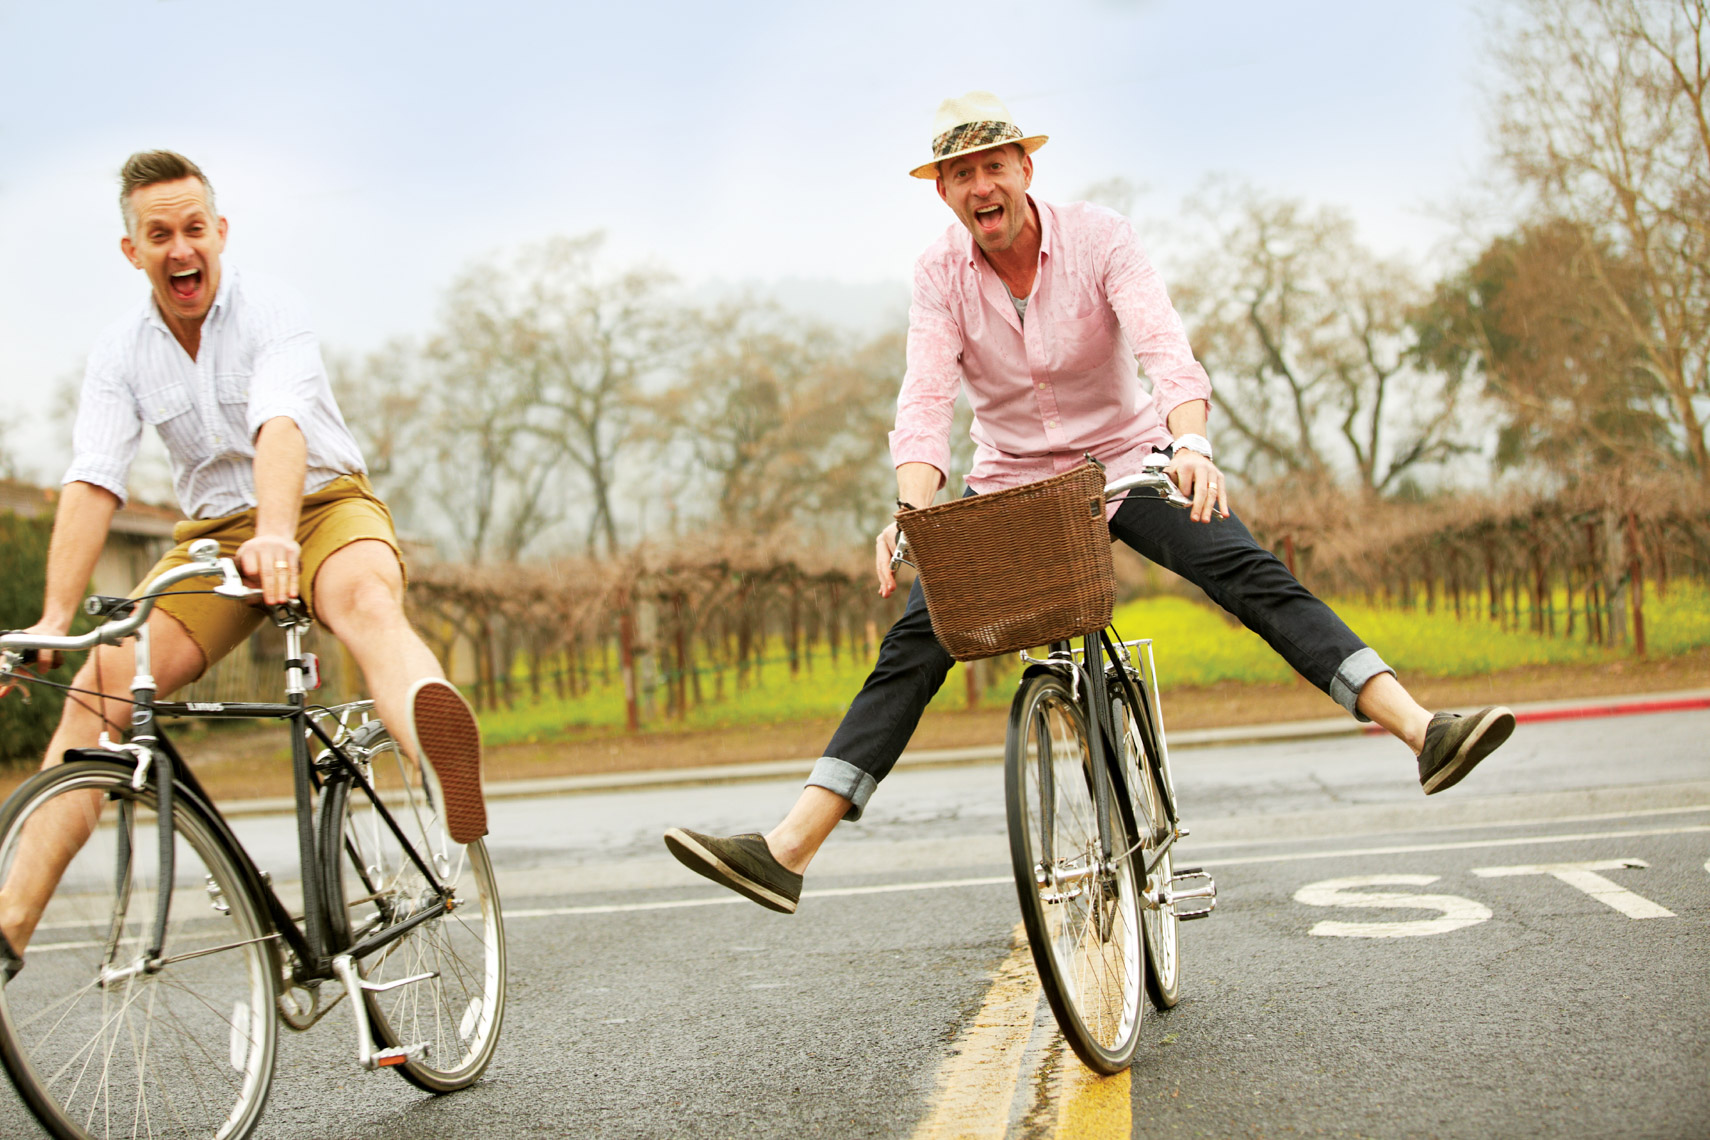 Two men ride  vintage bikes playfully with legs spread out on a street